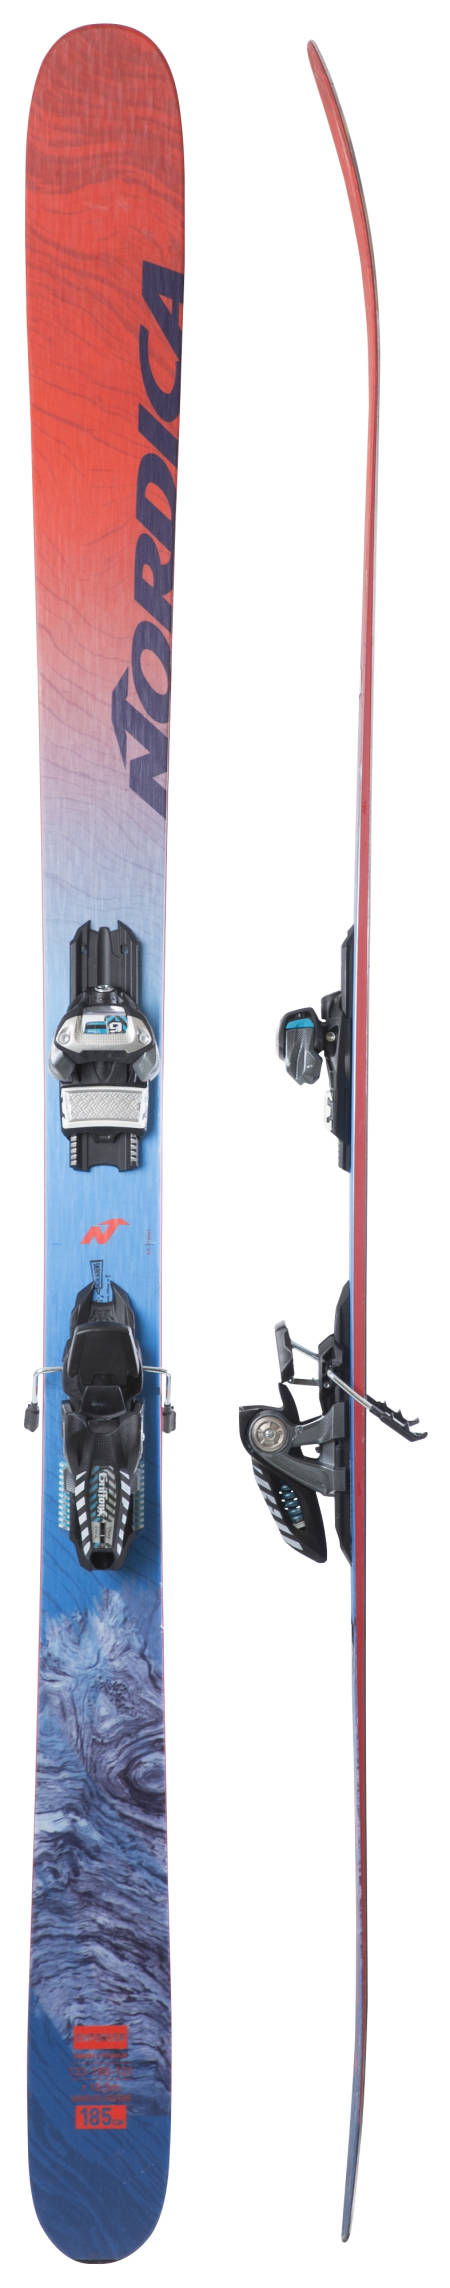 Test av Nordica Enforcer